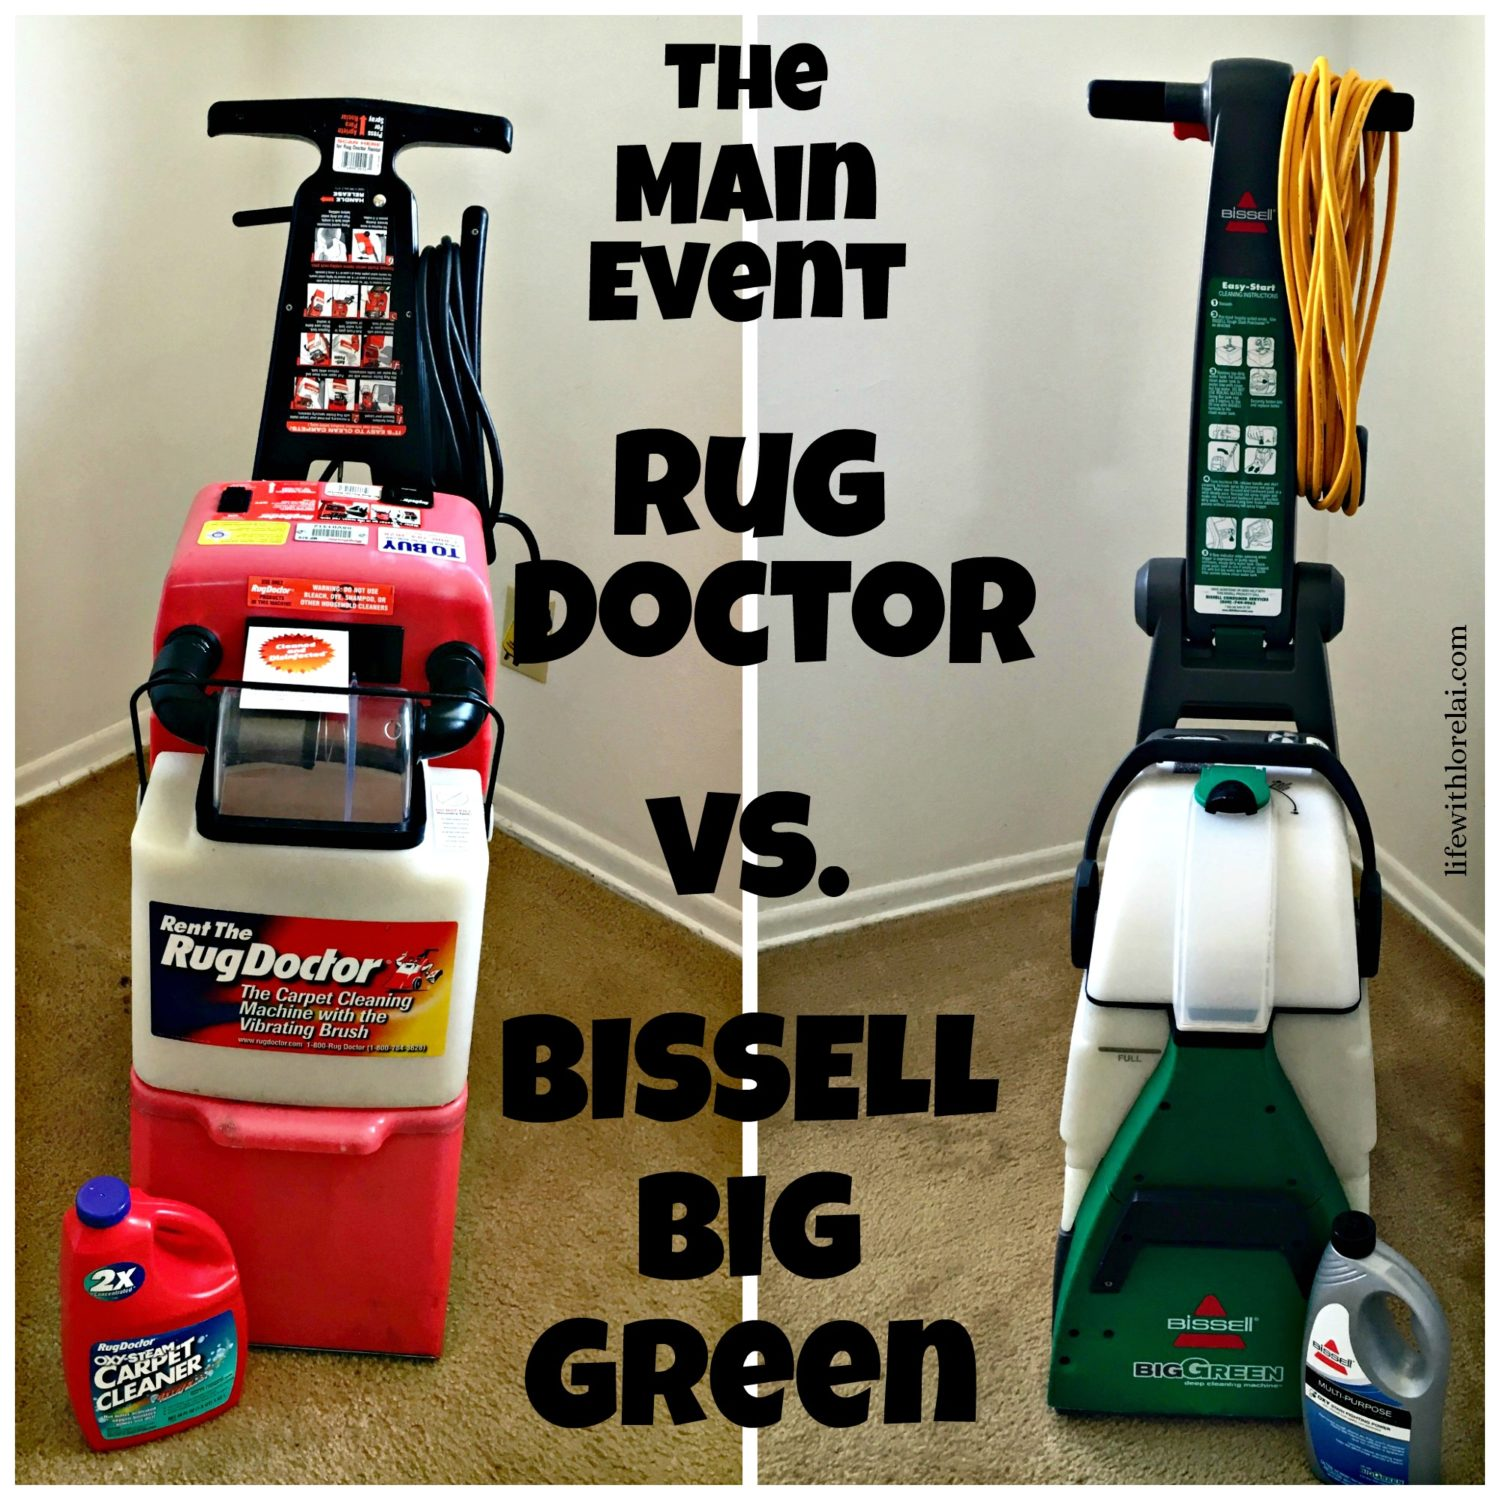 Main event rug doctor vs bissell big green